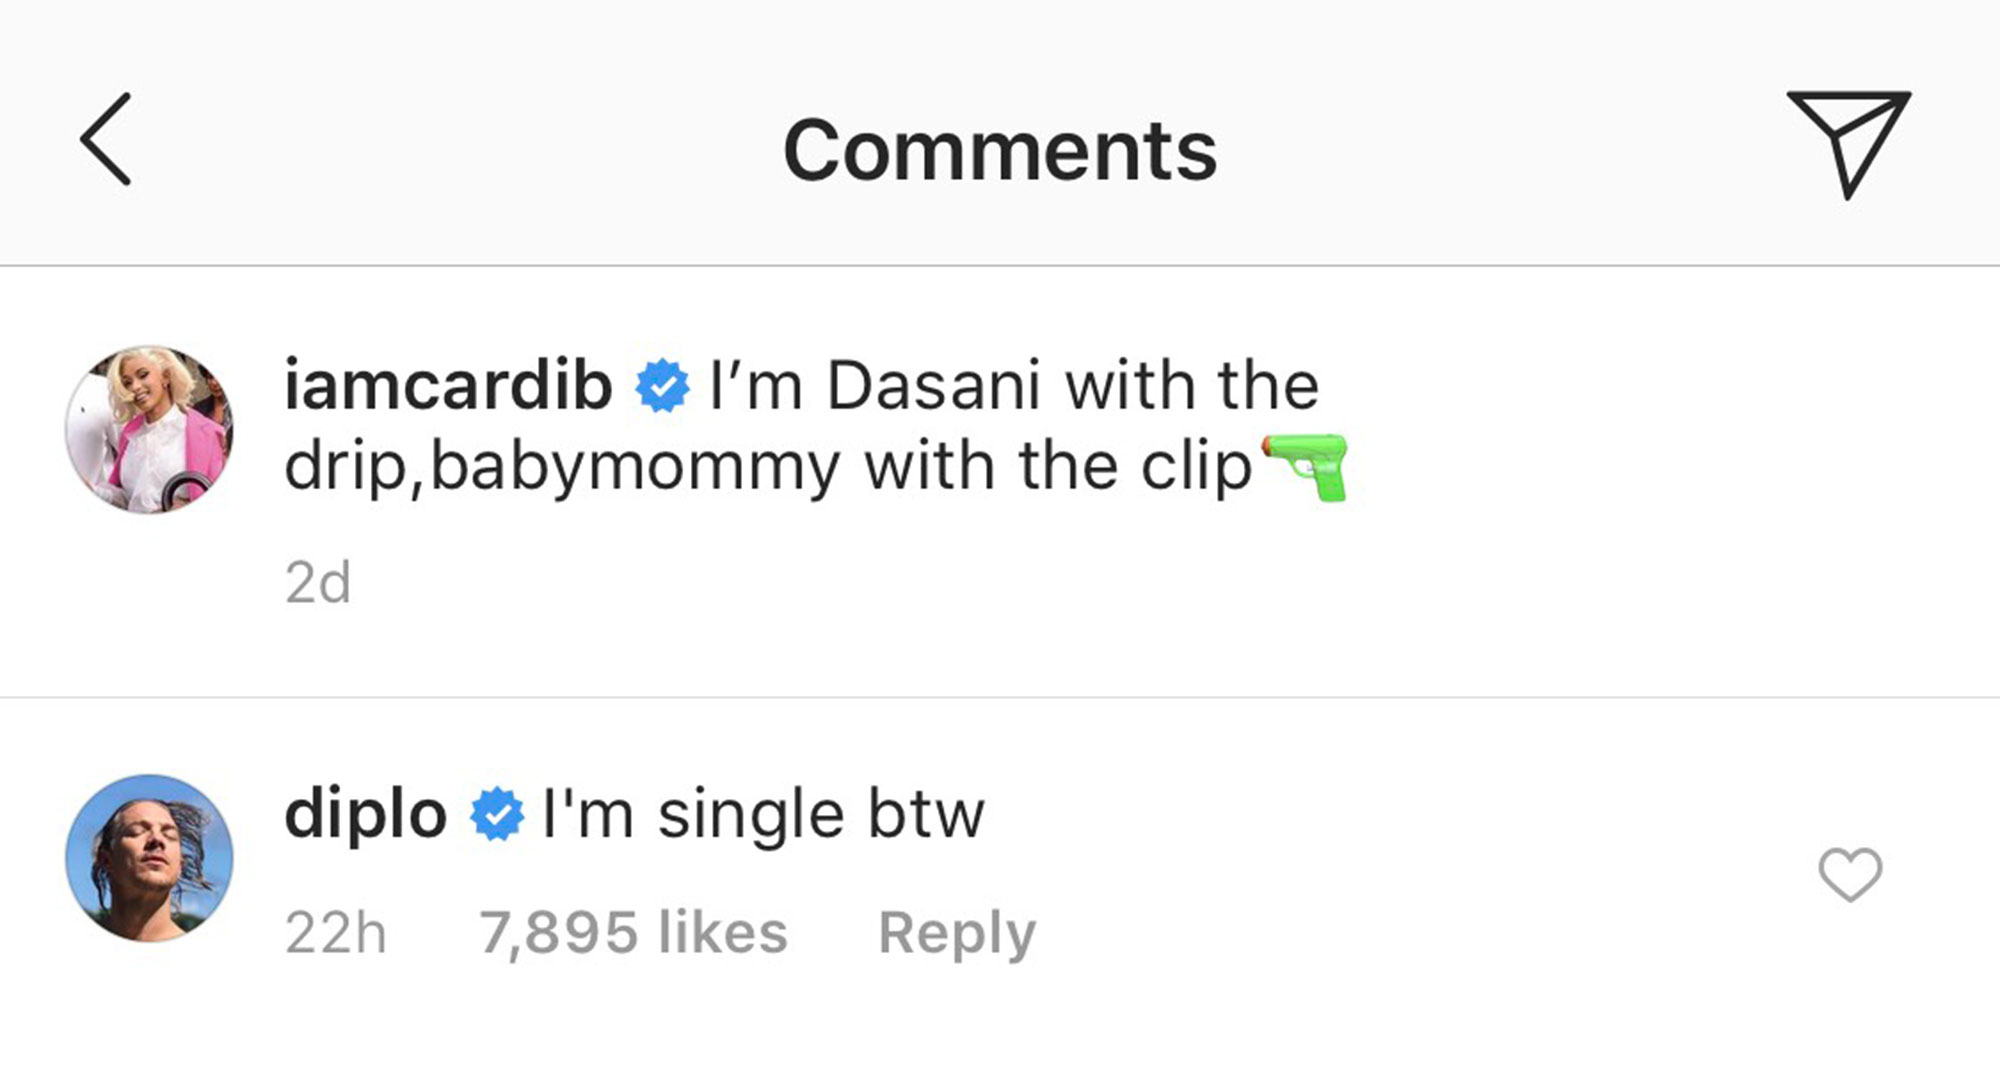 Diplo Leaves a Flirty Comment on Cardi B's Instagram After Her Split - Cardi B and Diplo's comments on Instagram